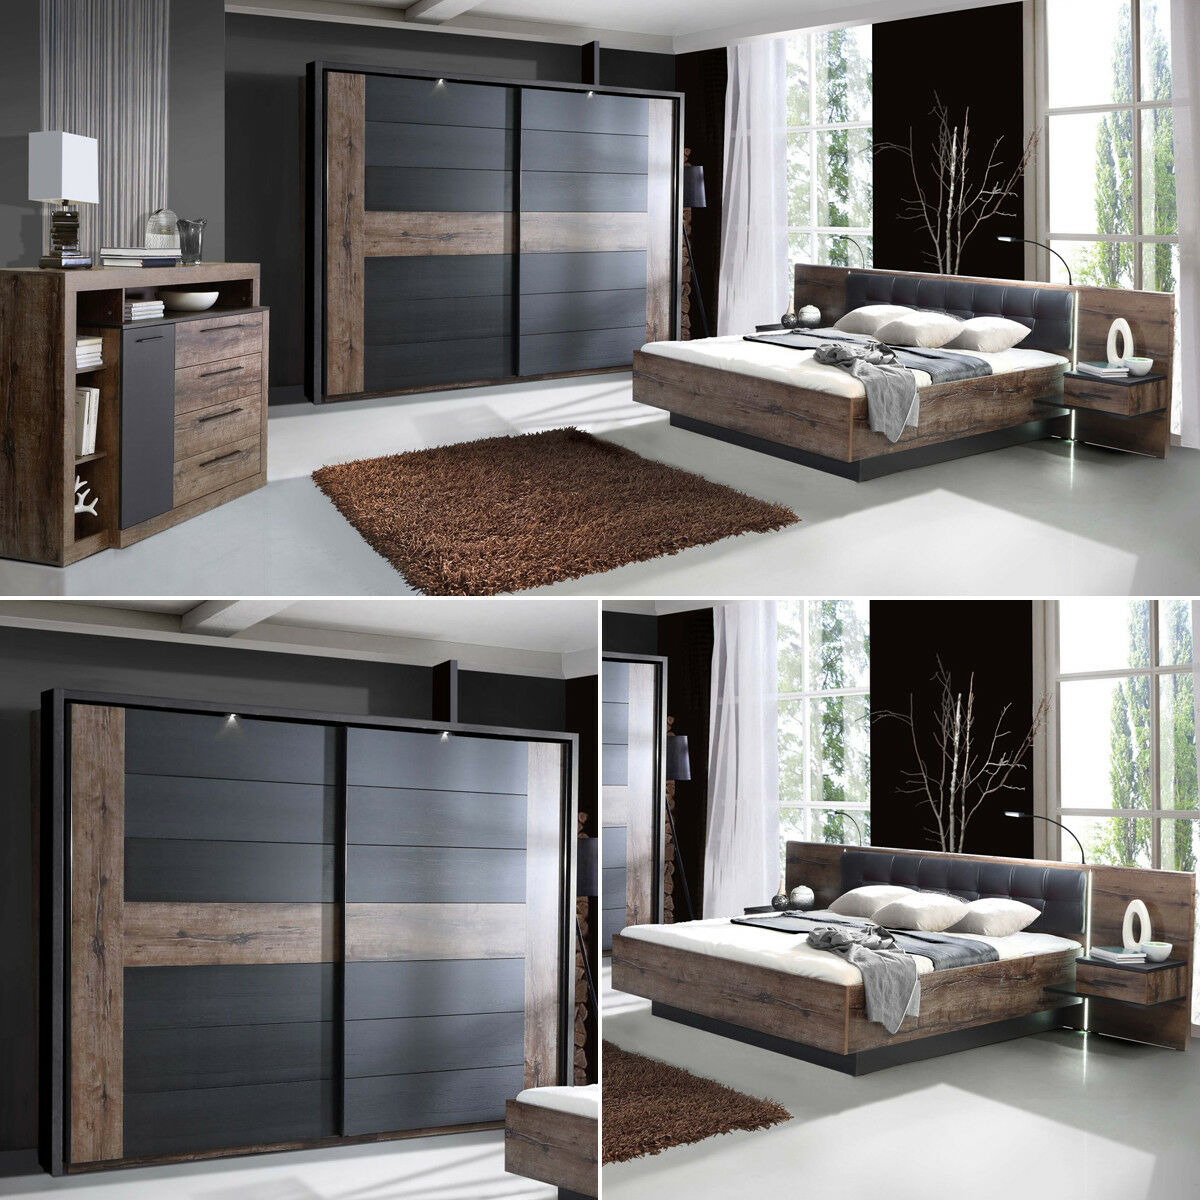 schlafzimmer bellevue bett 180x200 nachttische schwebet renschrank sideboard eur 999 95. Black Bedroom Furniture Sets. Home Design Ideas